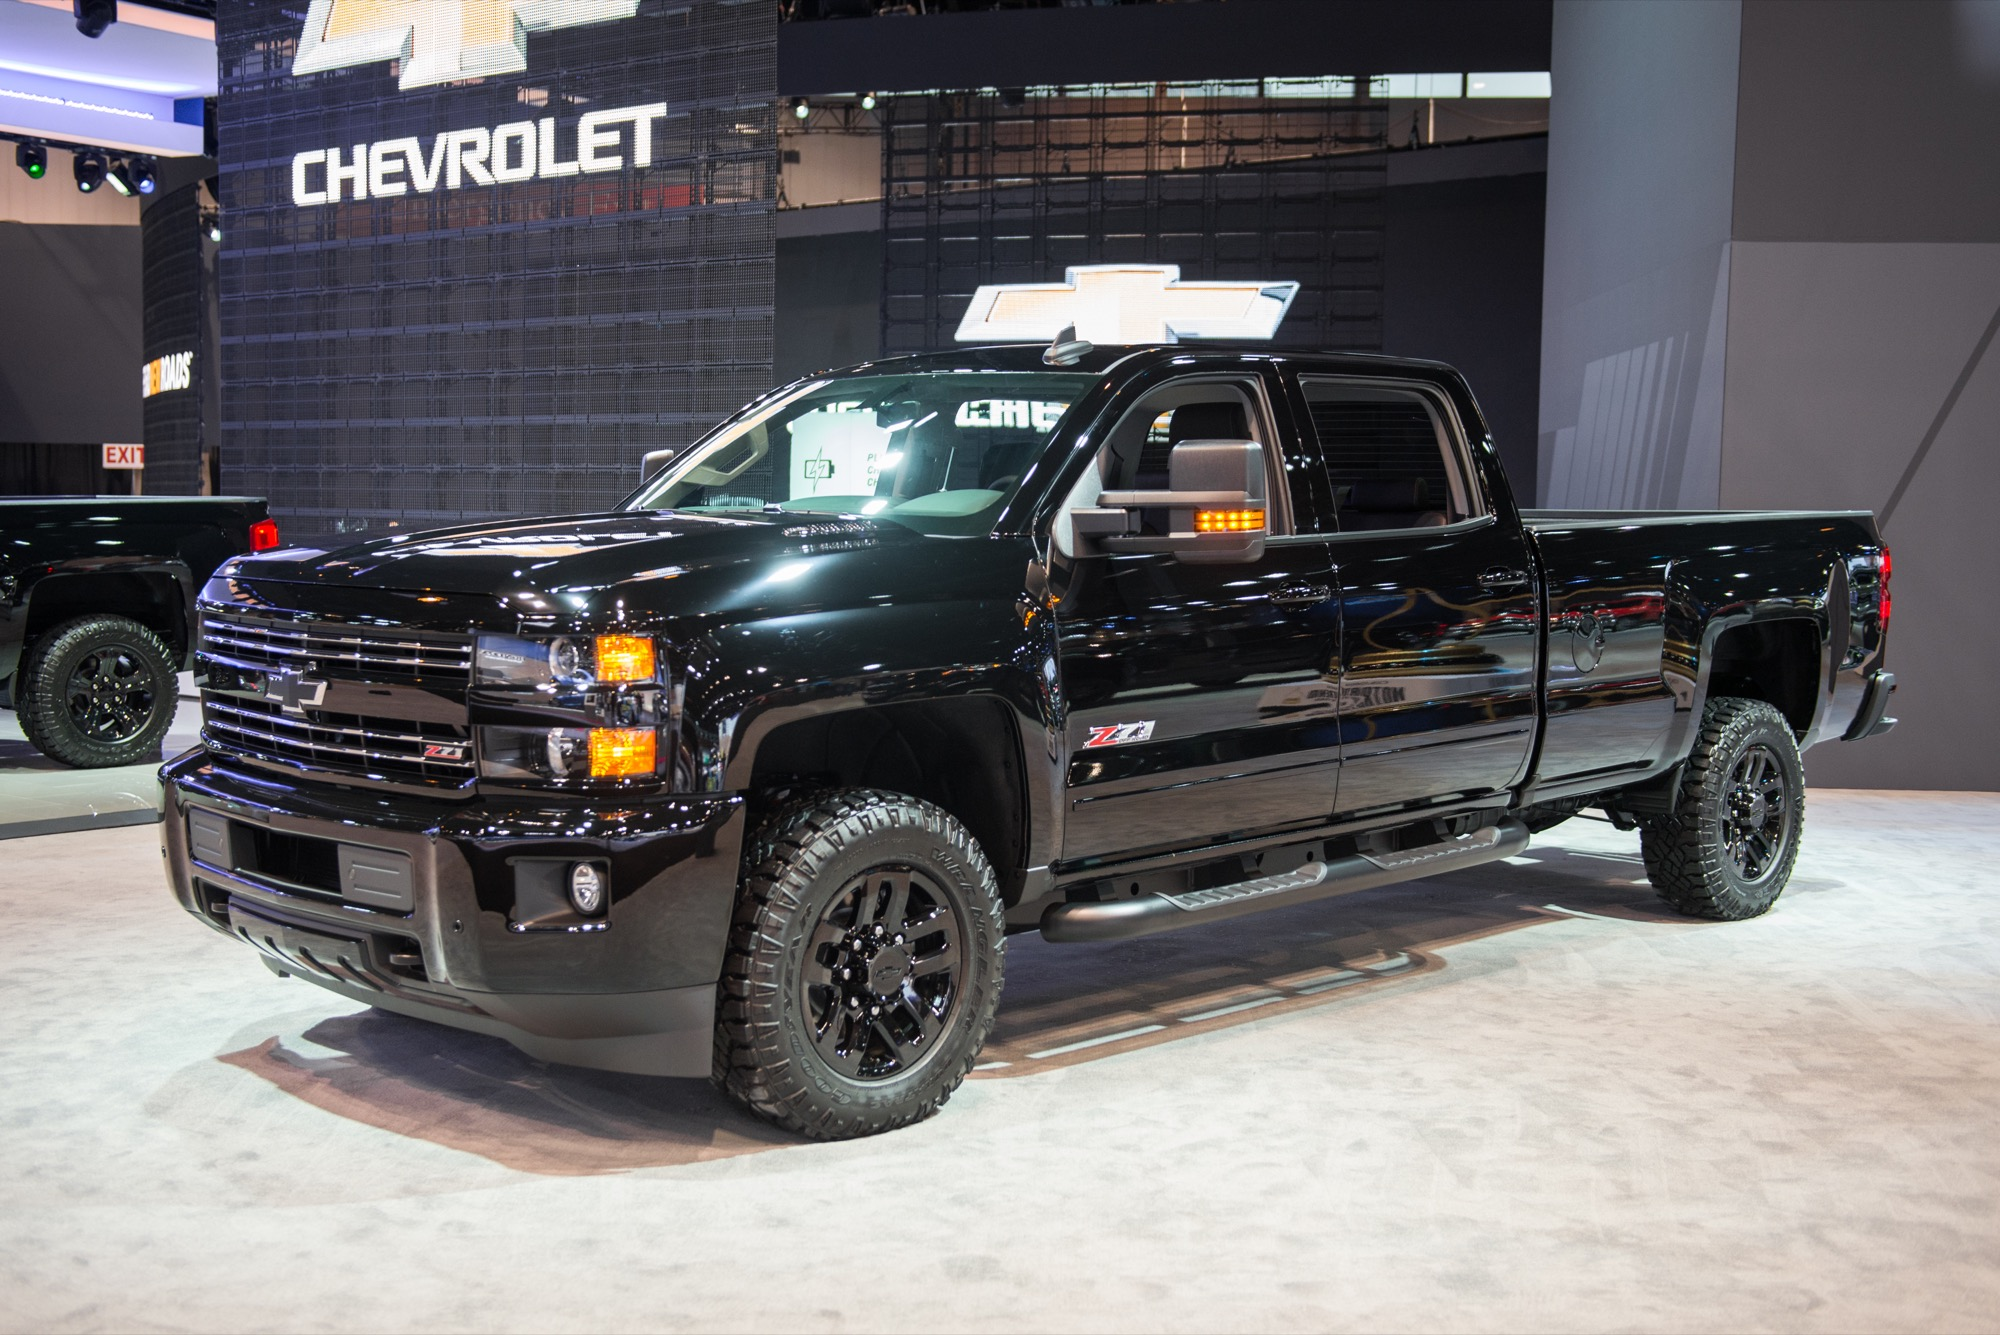 2016 chevrolet silverado 2500hd photos informations. Black Bedroom Furniture Sets. Home Design Ideas